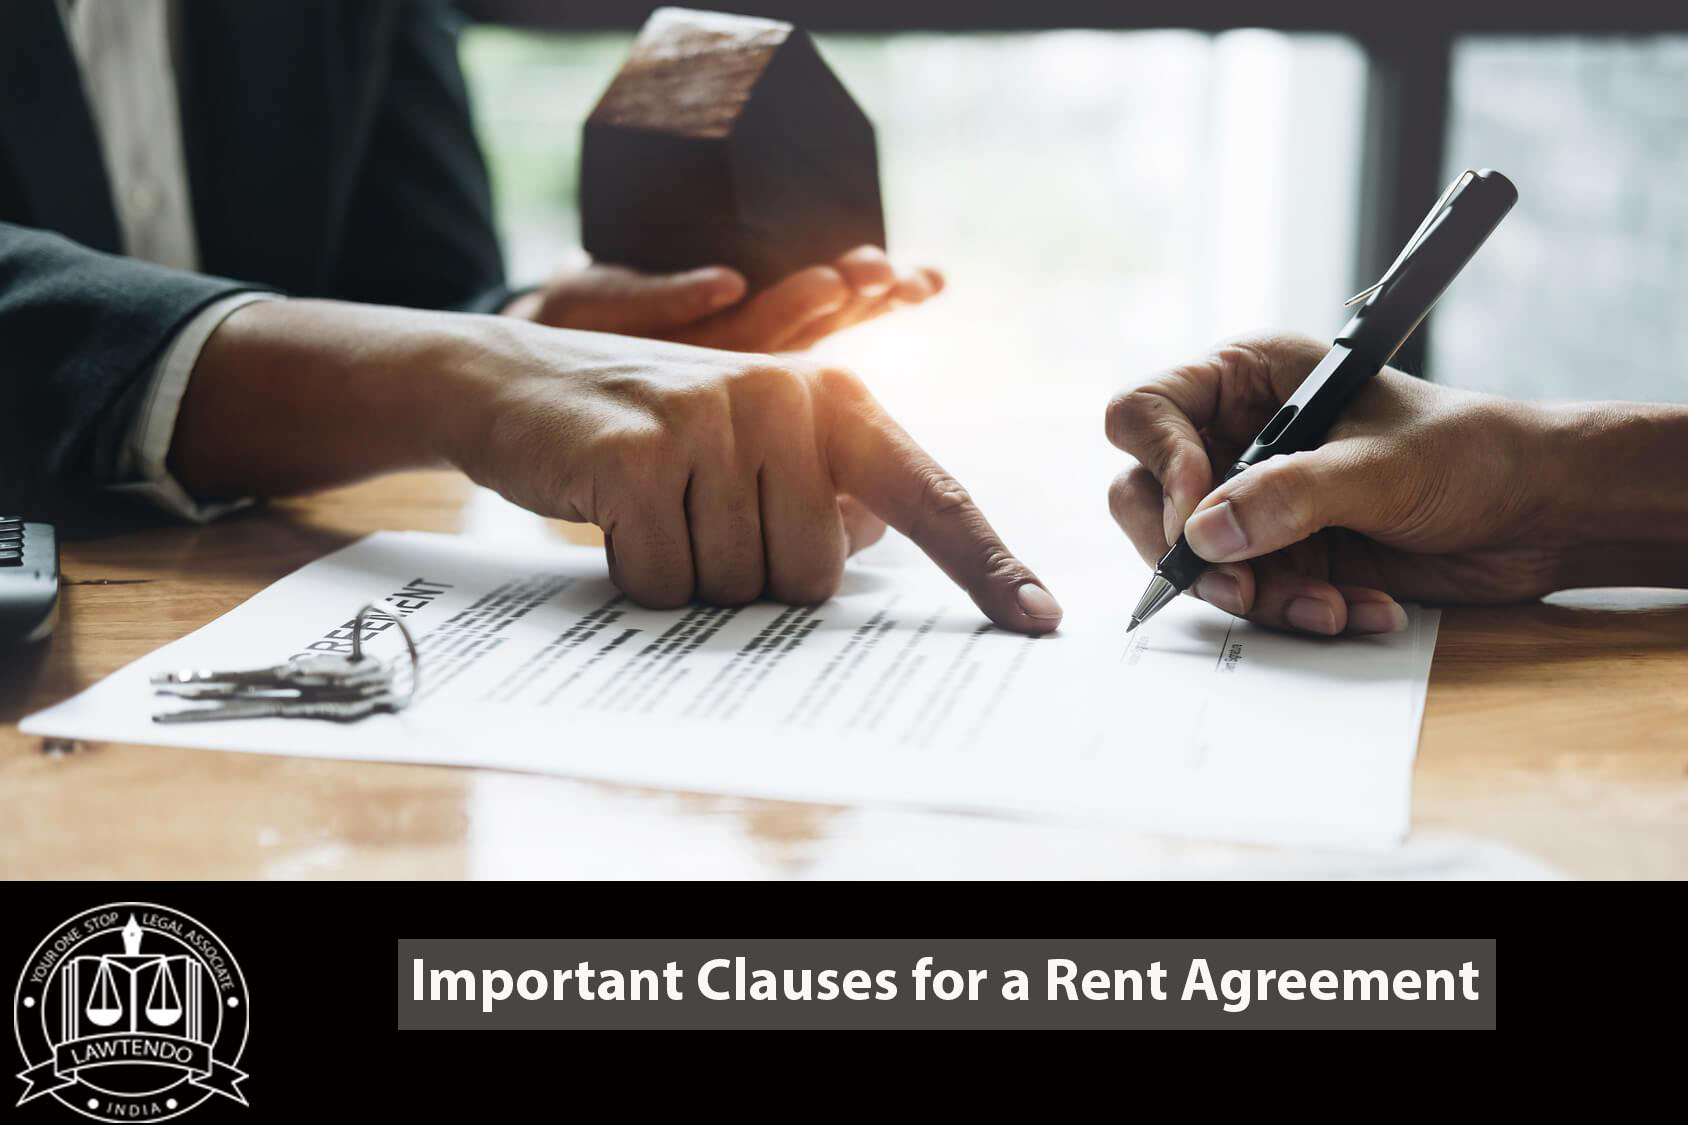 Important Clauses for a Rent Agreement